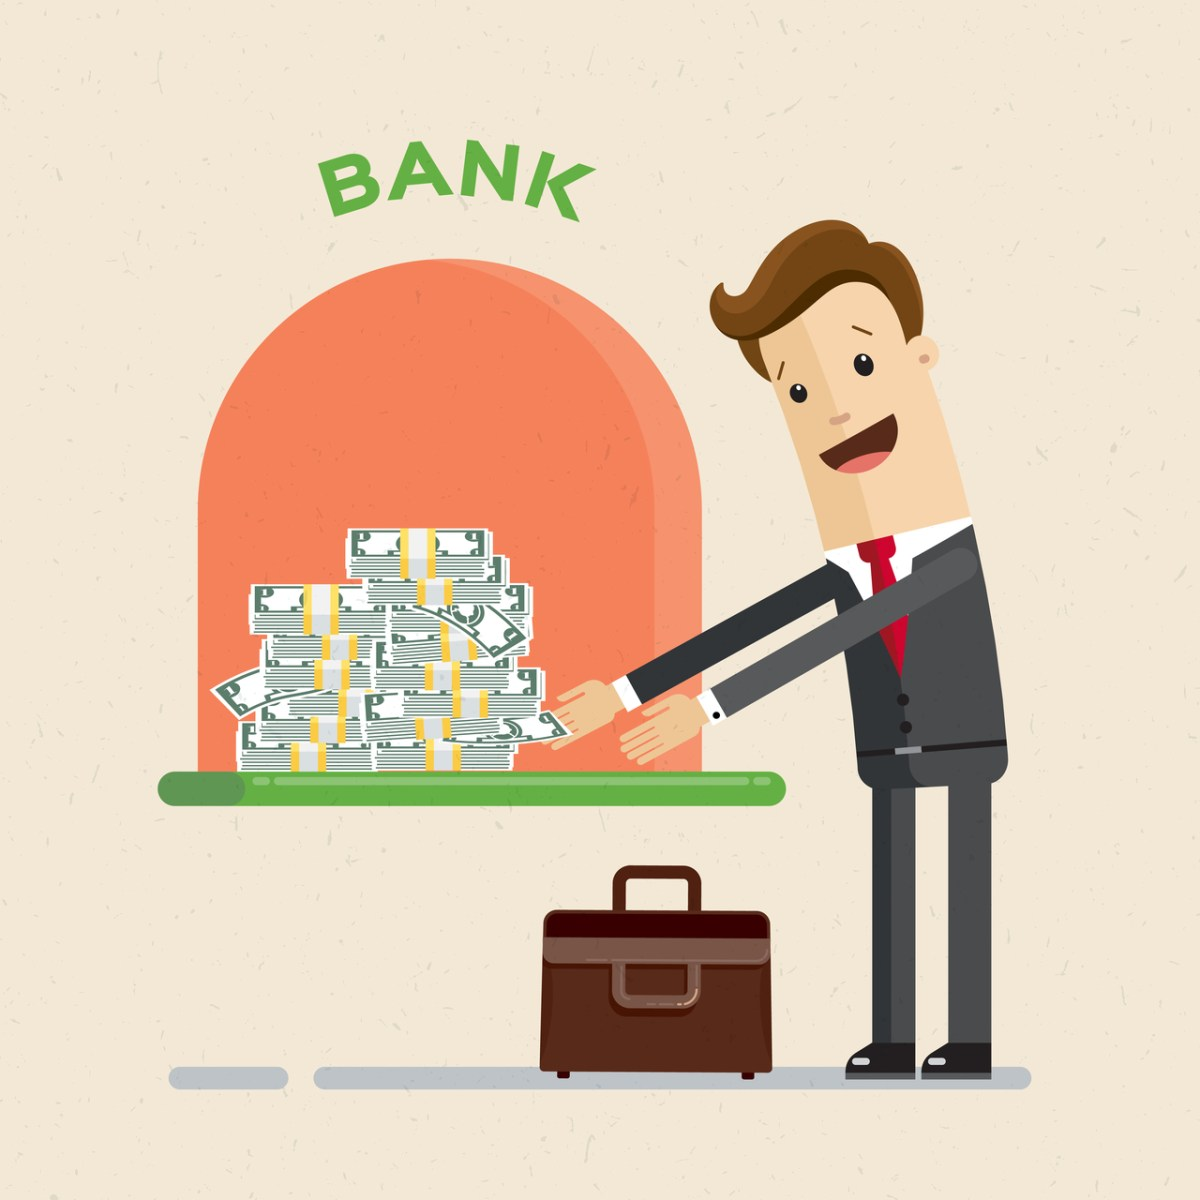 4 Benefits to Bank Account Bonuses and How to Get Them